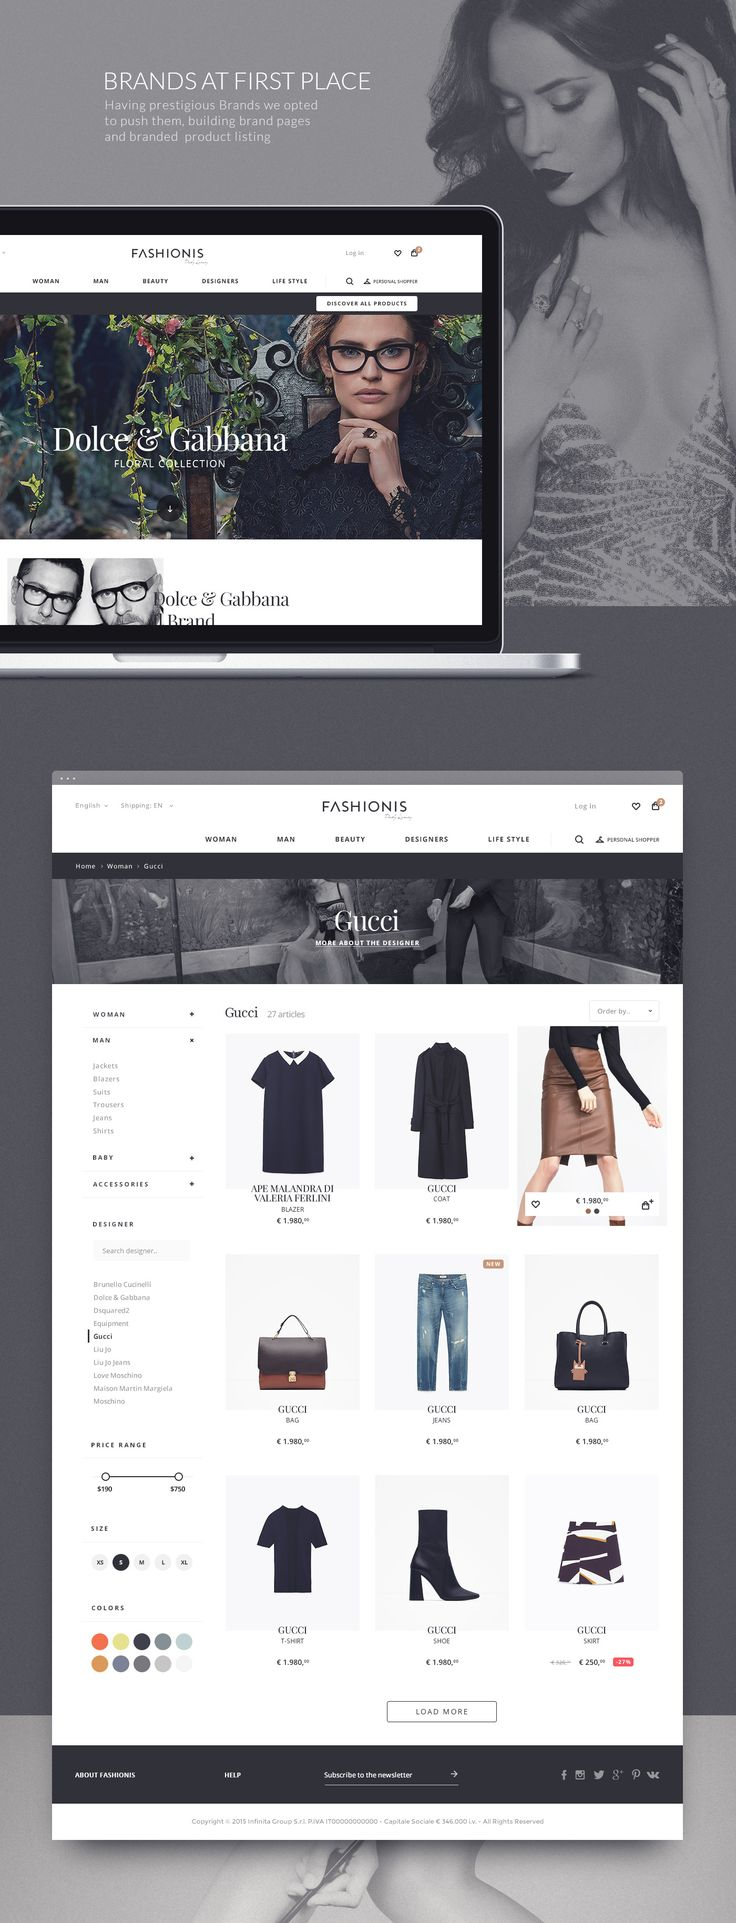 Italy means fashion and Fashionis is the italian startup thet aims to sell online the best fashion brands and great young italian brands. We were engaged to design the whole e-commerce, and we done it with the style at first place.